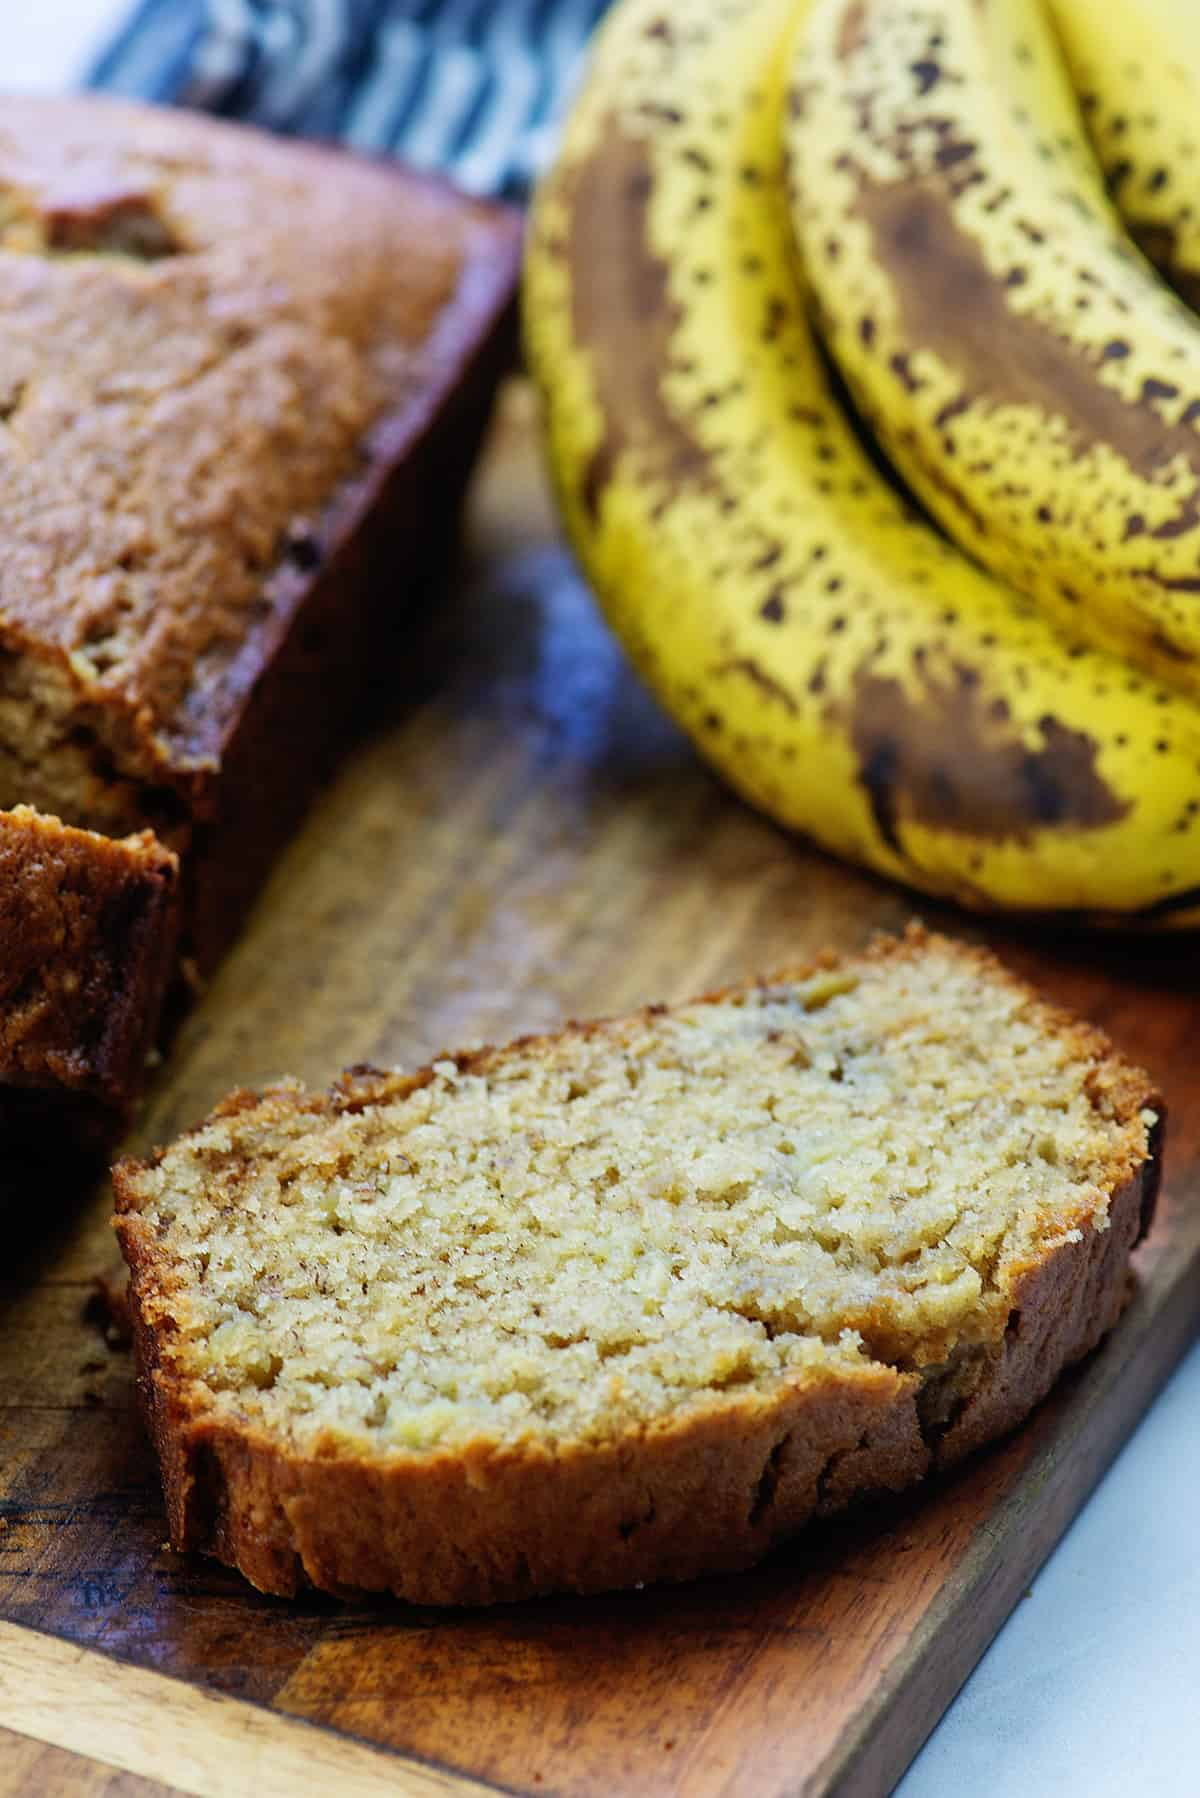 sliced banana bread on wooden cutting board next to ripe bananas